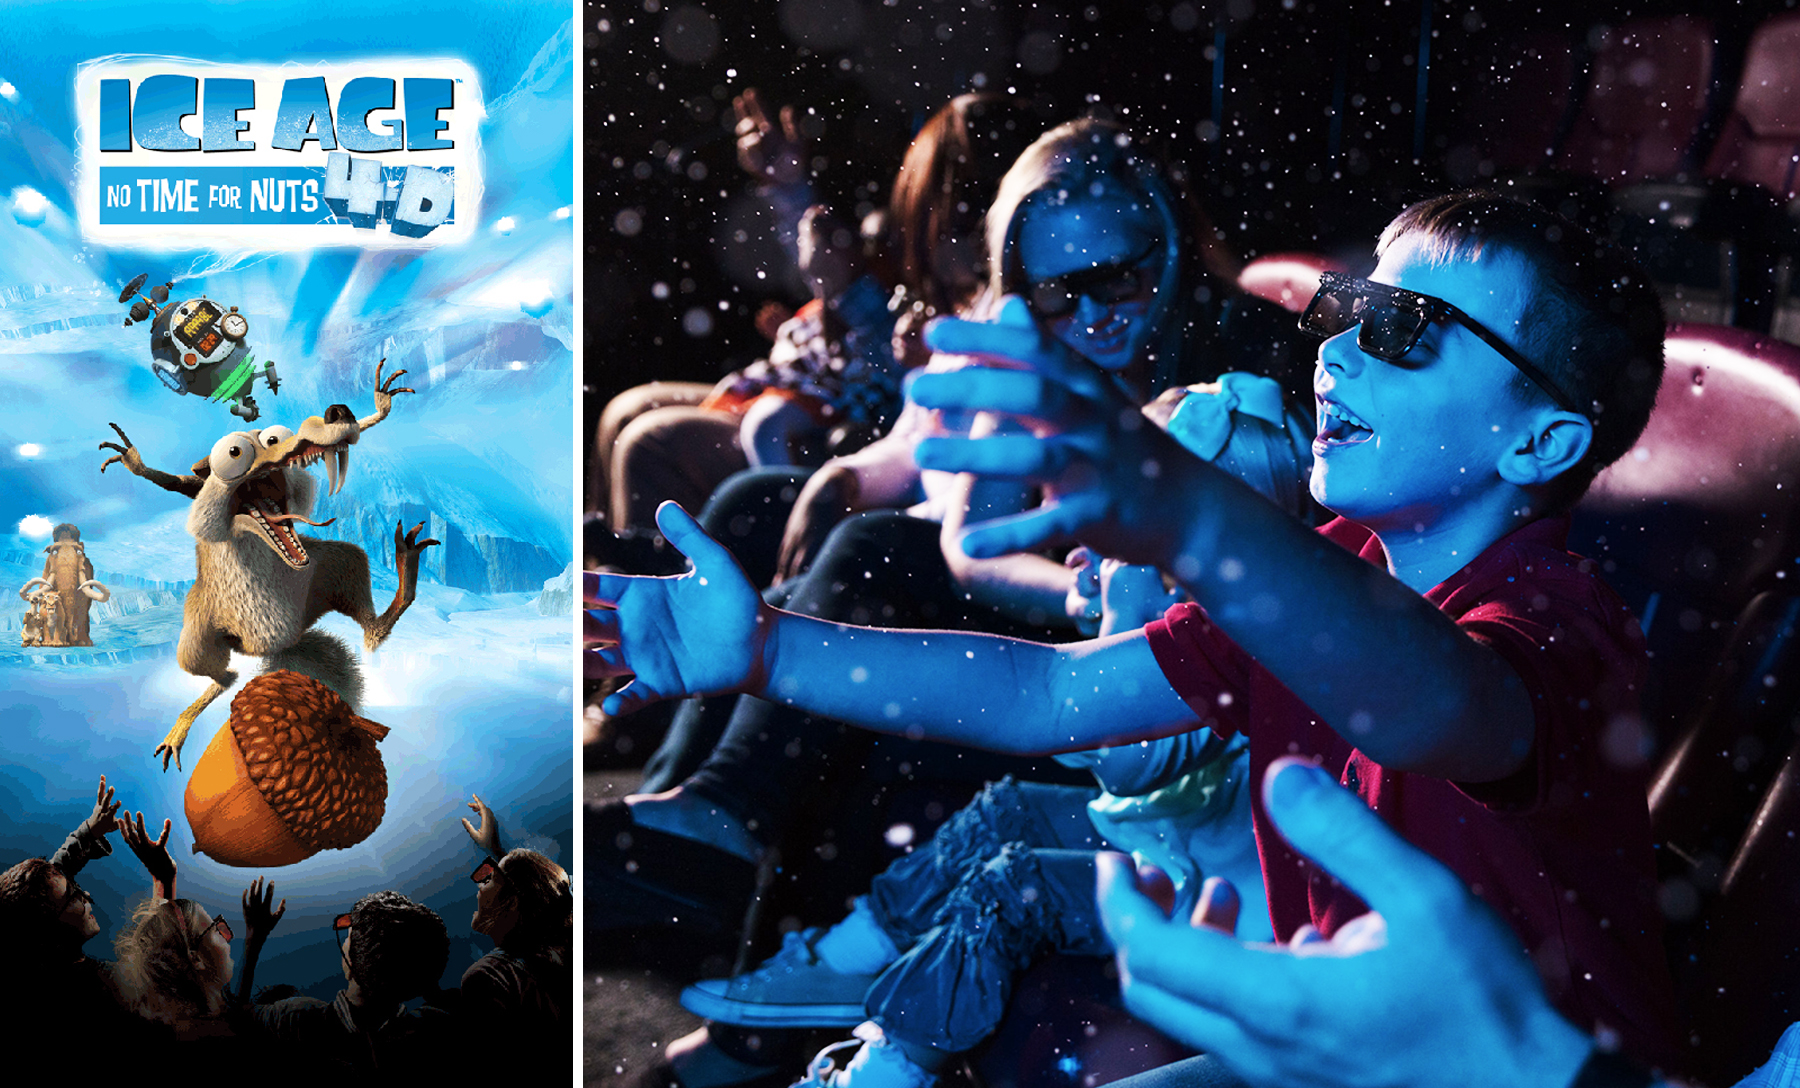 Memorial Day, Weekend, 4d theater, Ice Age No Yime For Nuts 4D, Columbia, Family, Things to Do